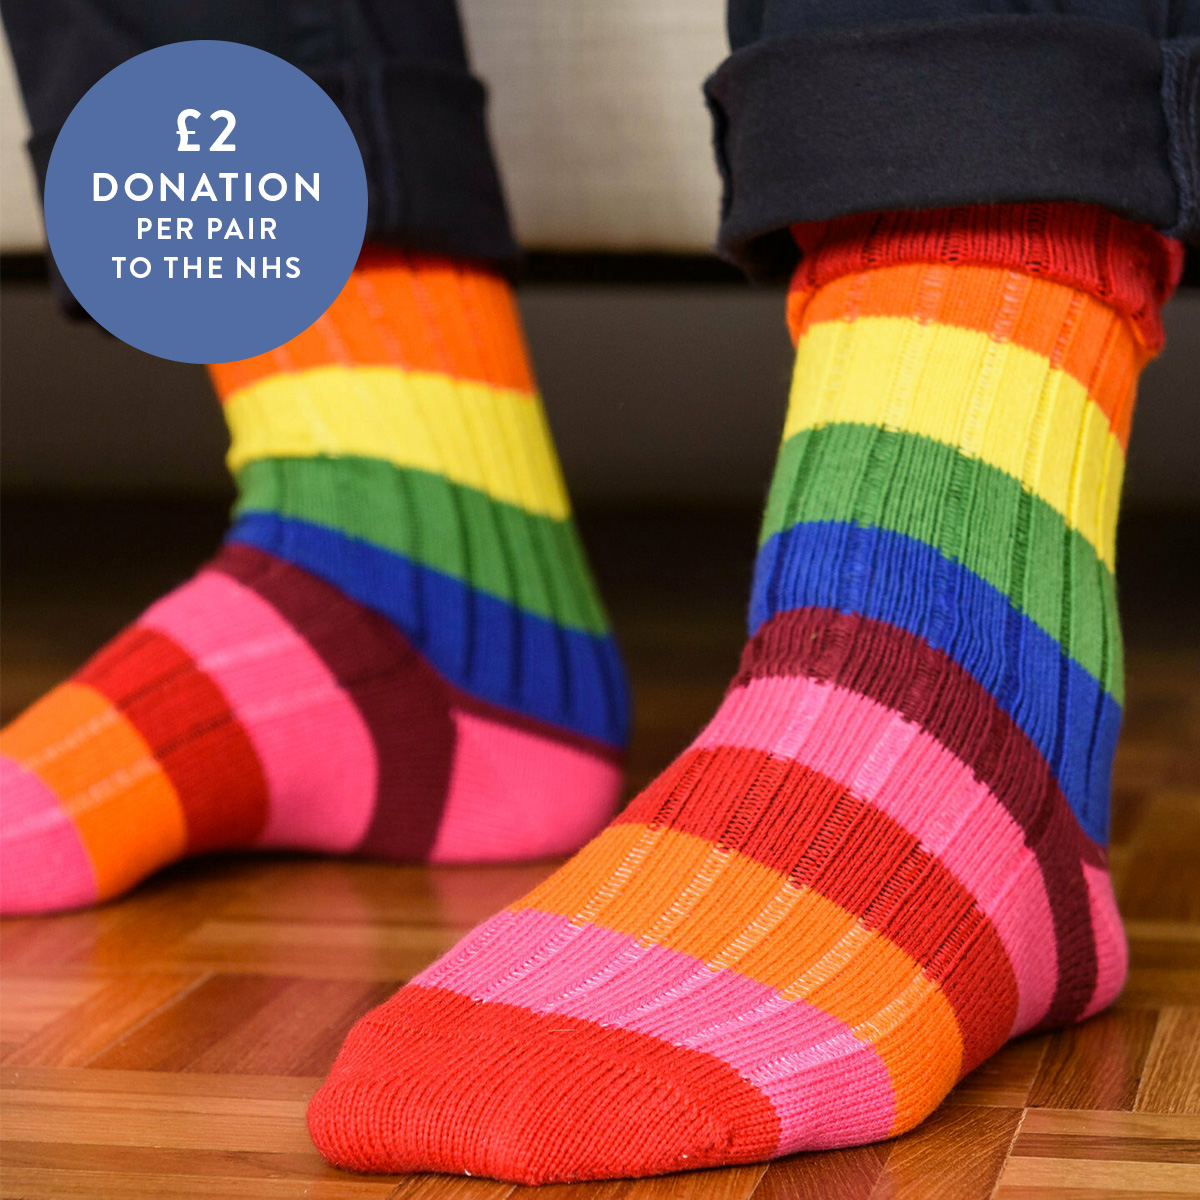 The 🌈 has come to symbolise our hope for better things, and blue and white is now synonymous with the NHS. For this reason, for every pair of socks in these 2 colours that our friend, Win or Lose, sells over in May, they will donate £2 to the NHS.  https://t.co/Rr4lro76th https://t.co/oW28IHTF9M